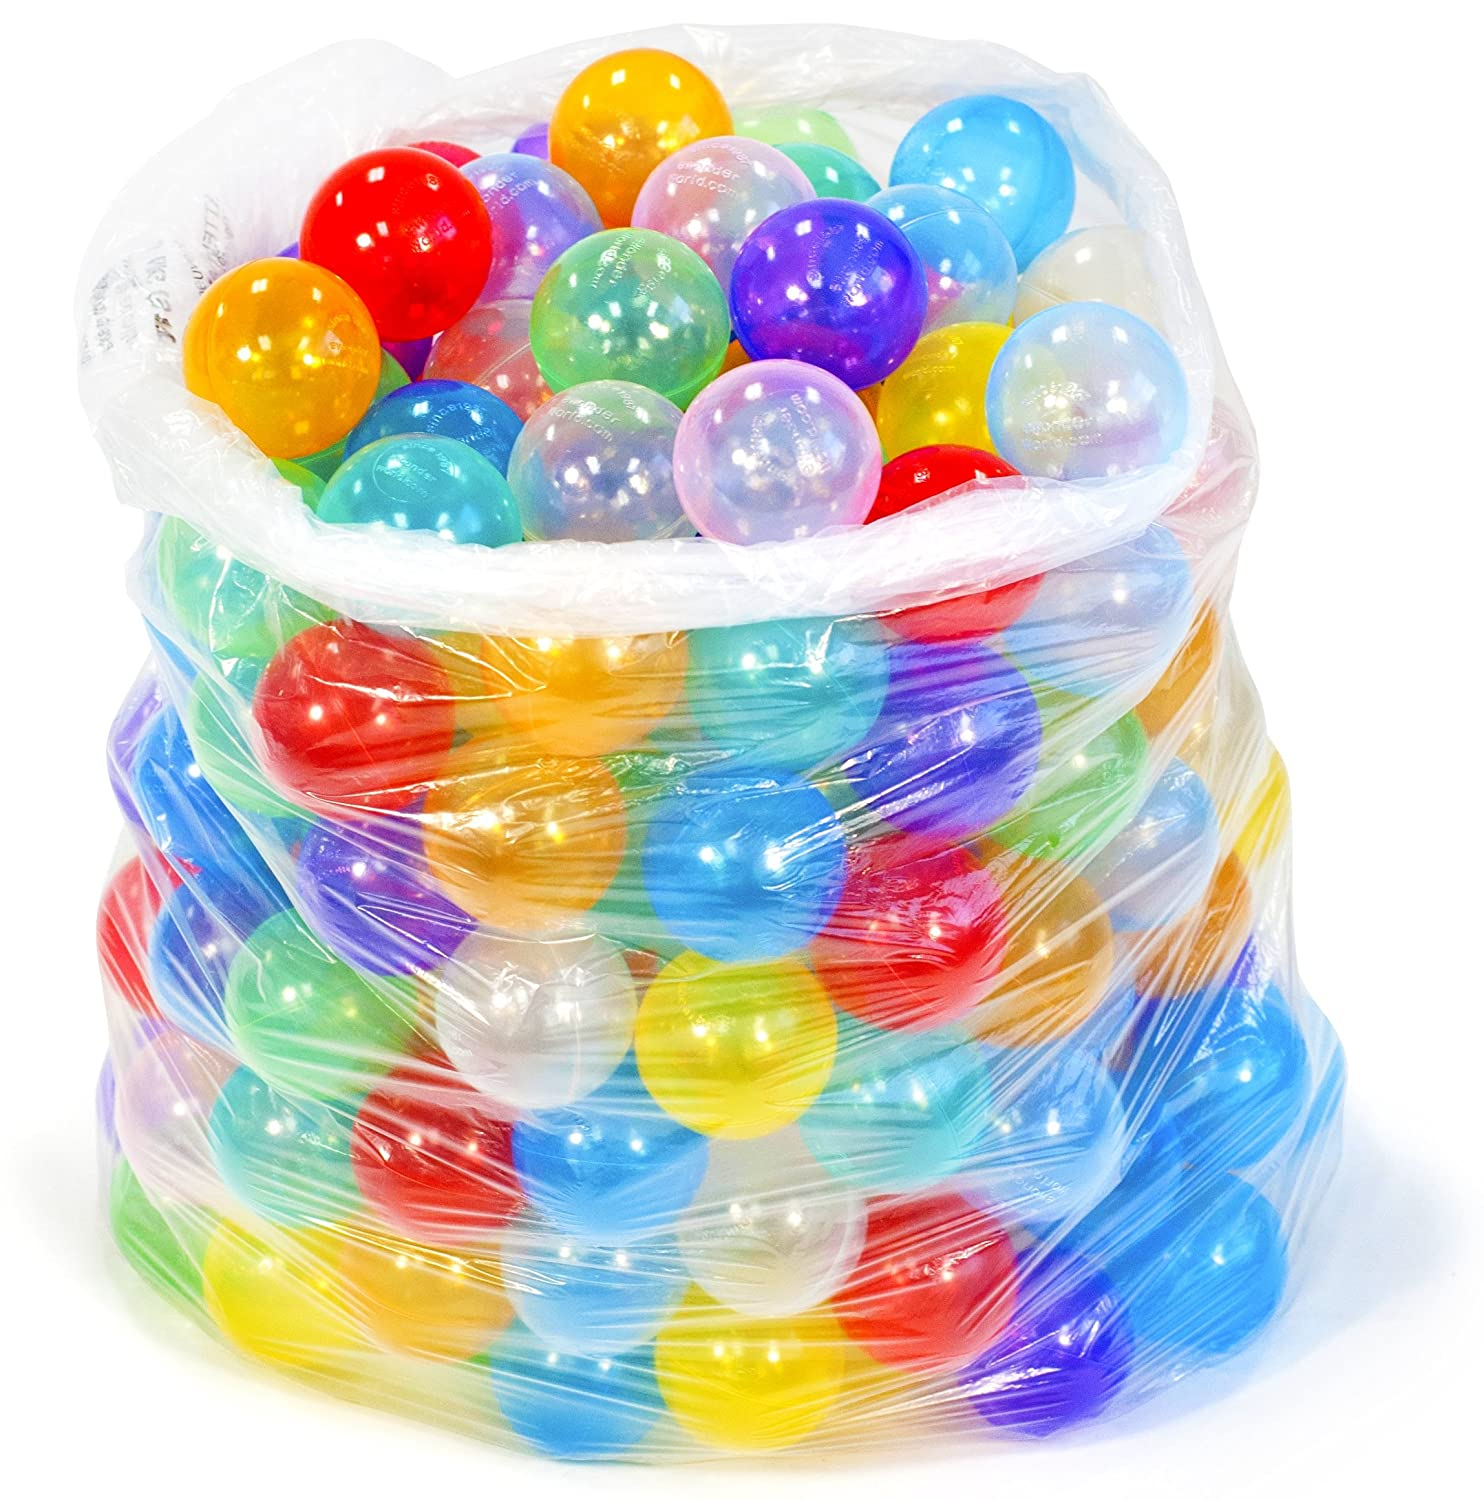 200 Non-Toxic Non-Recycled Quality Crush Proof Invisiball Play Pit Ball American Creative Team Inc. CT-3752PE